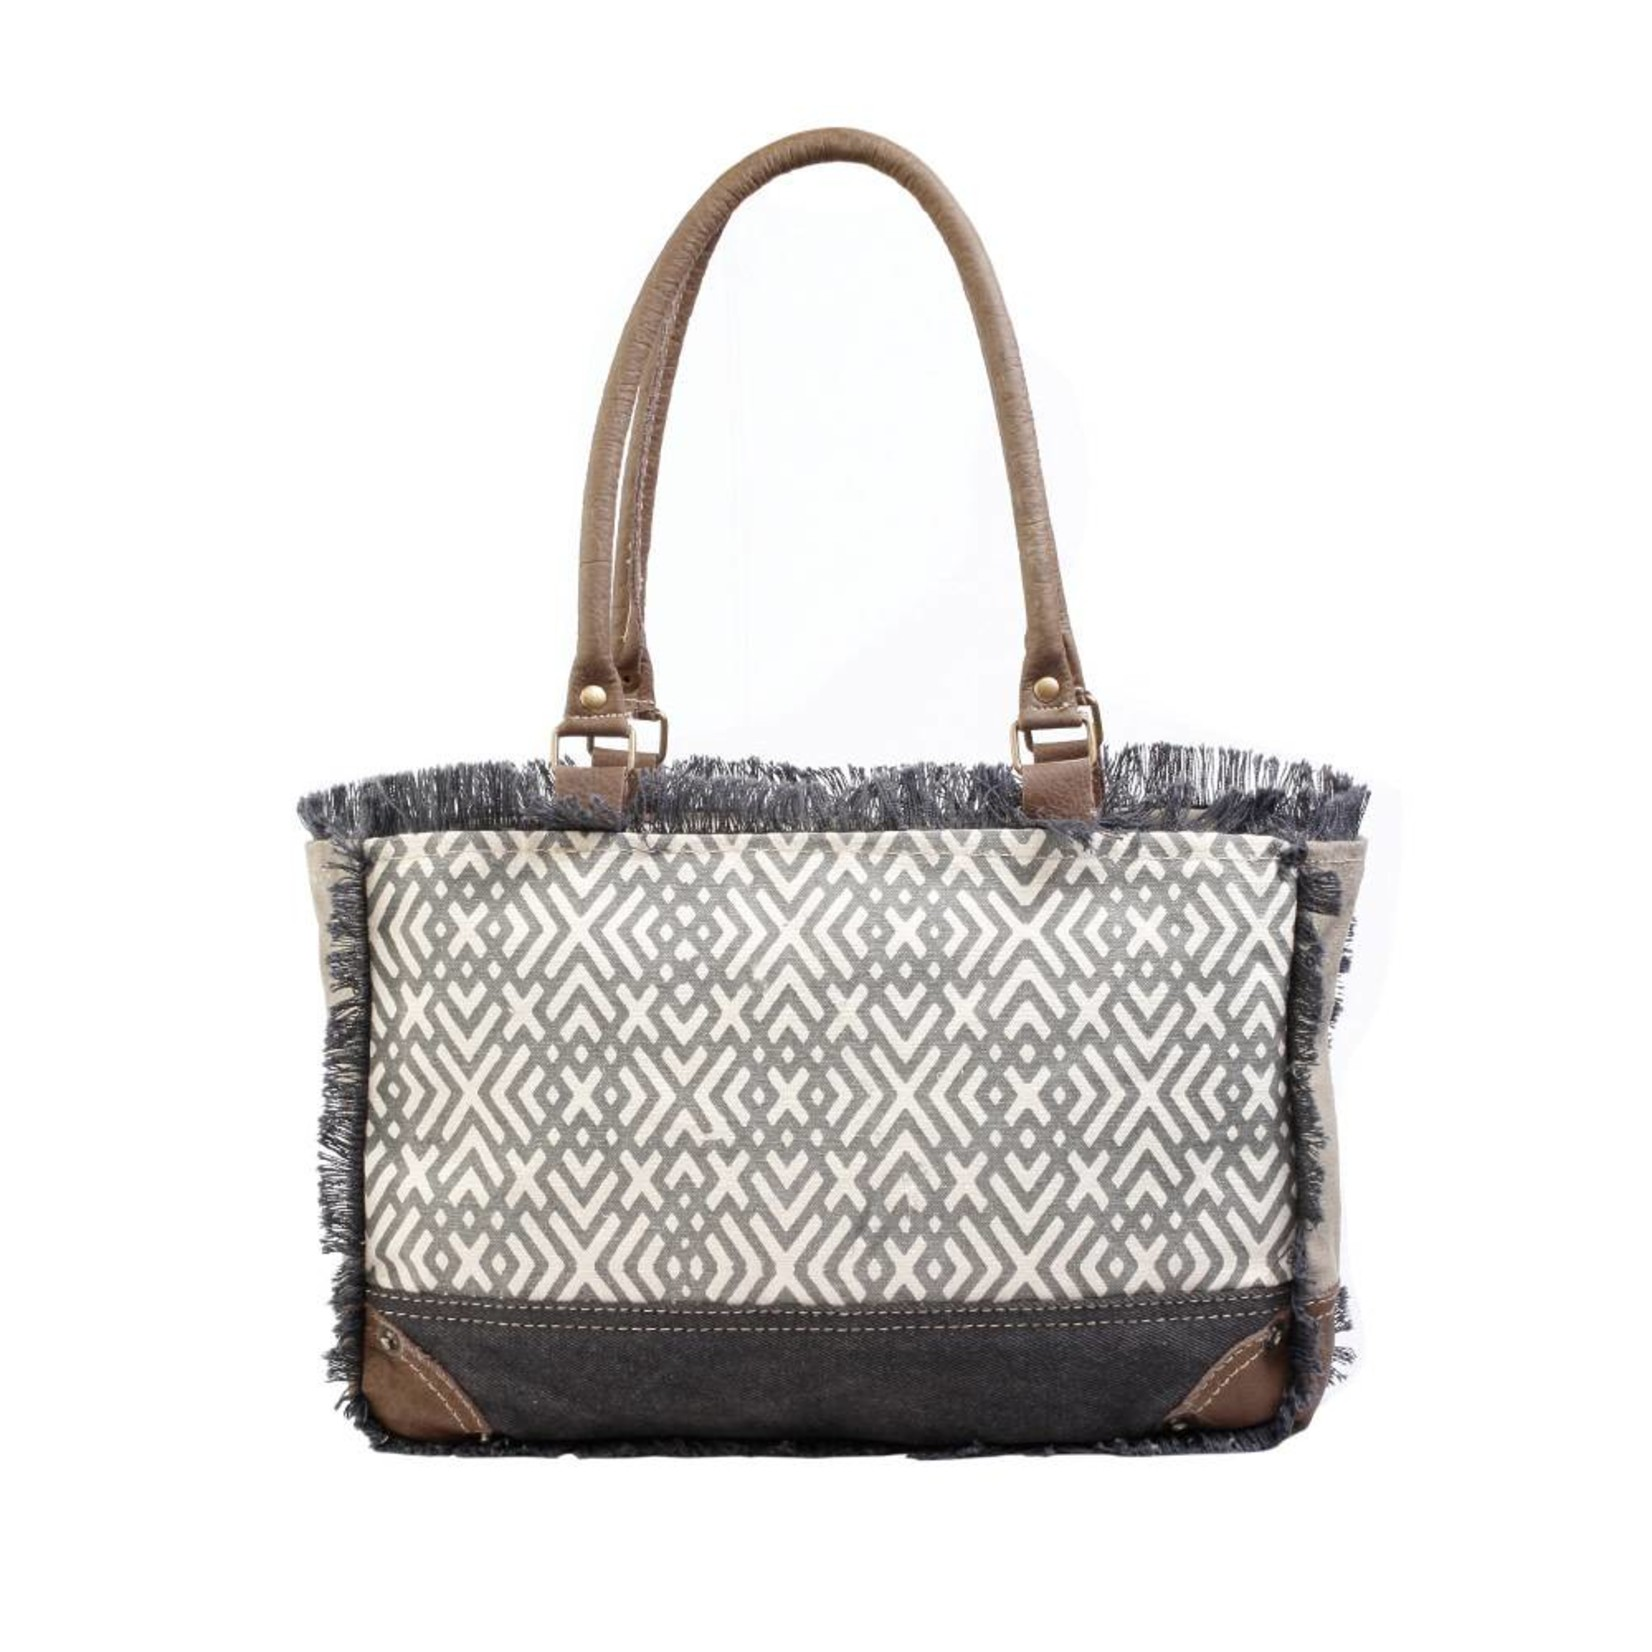 Myra Bags S-1044 X Design Bag